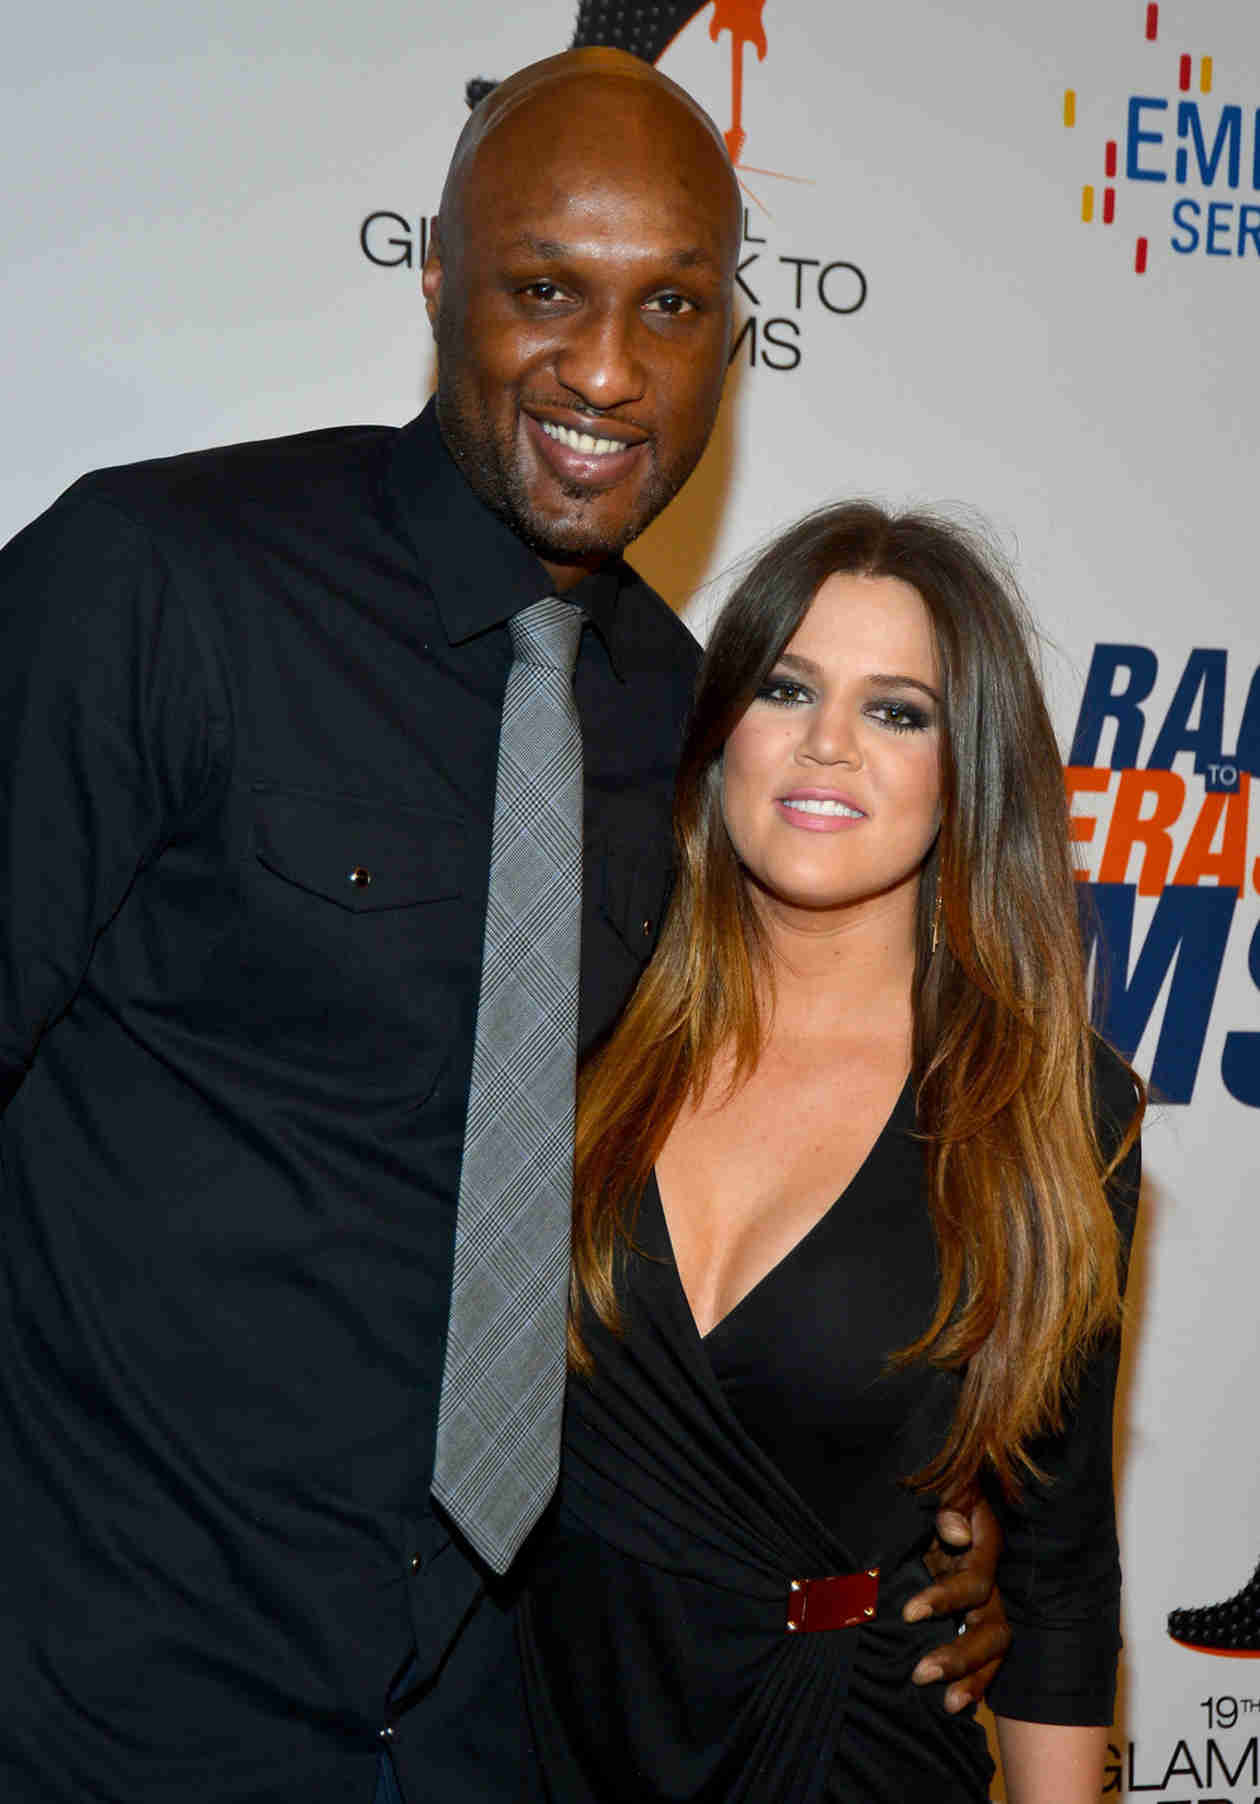 Lamar Odom Back in NBA, Playing for the Knicks Tonight